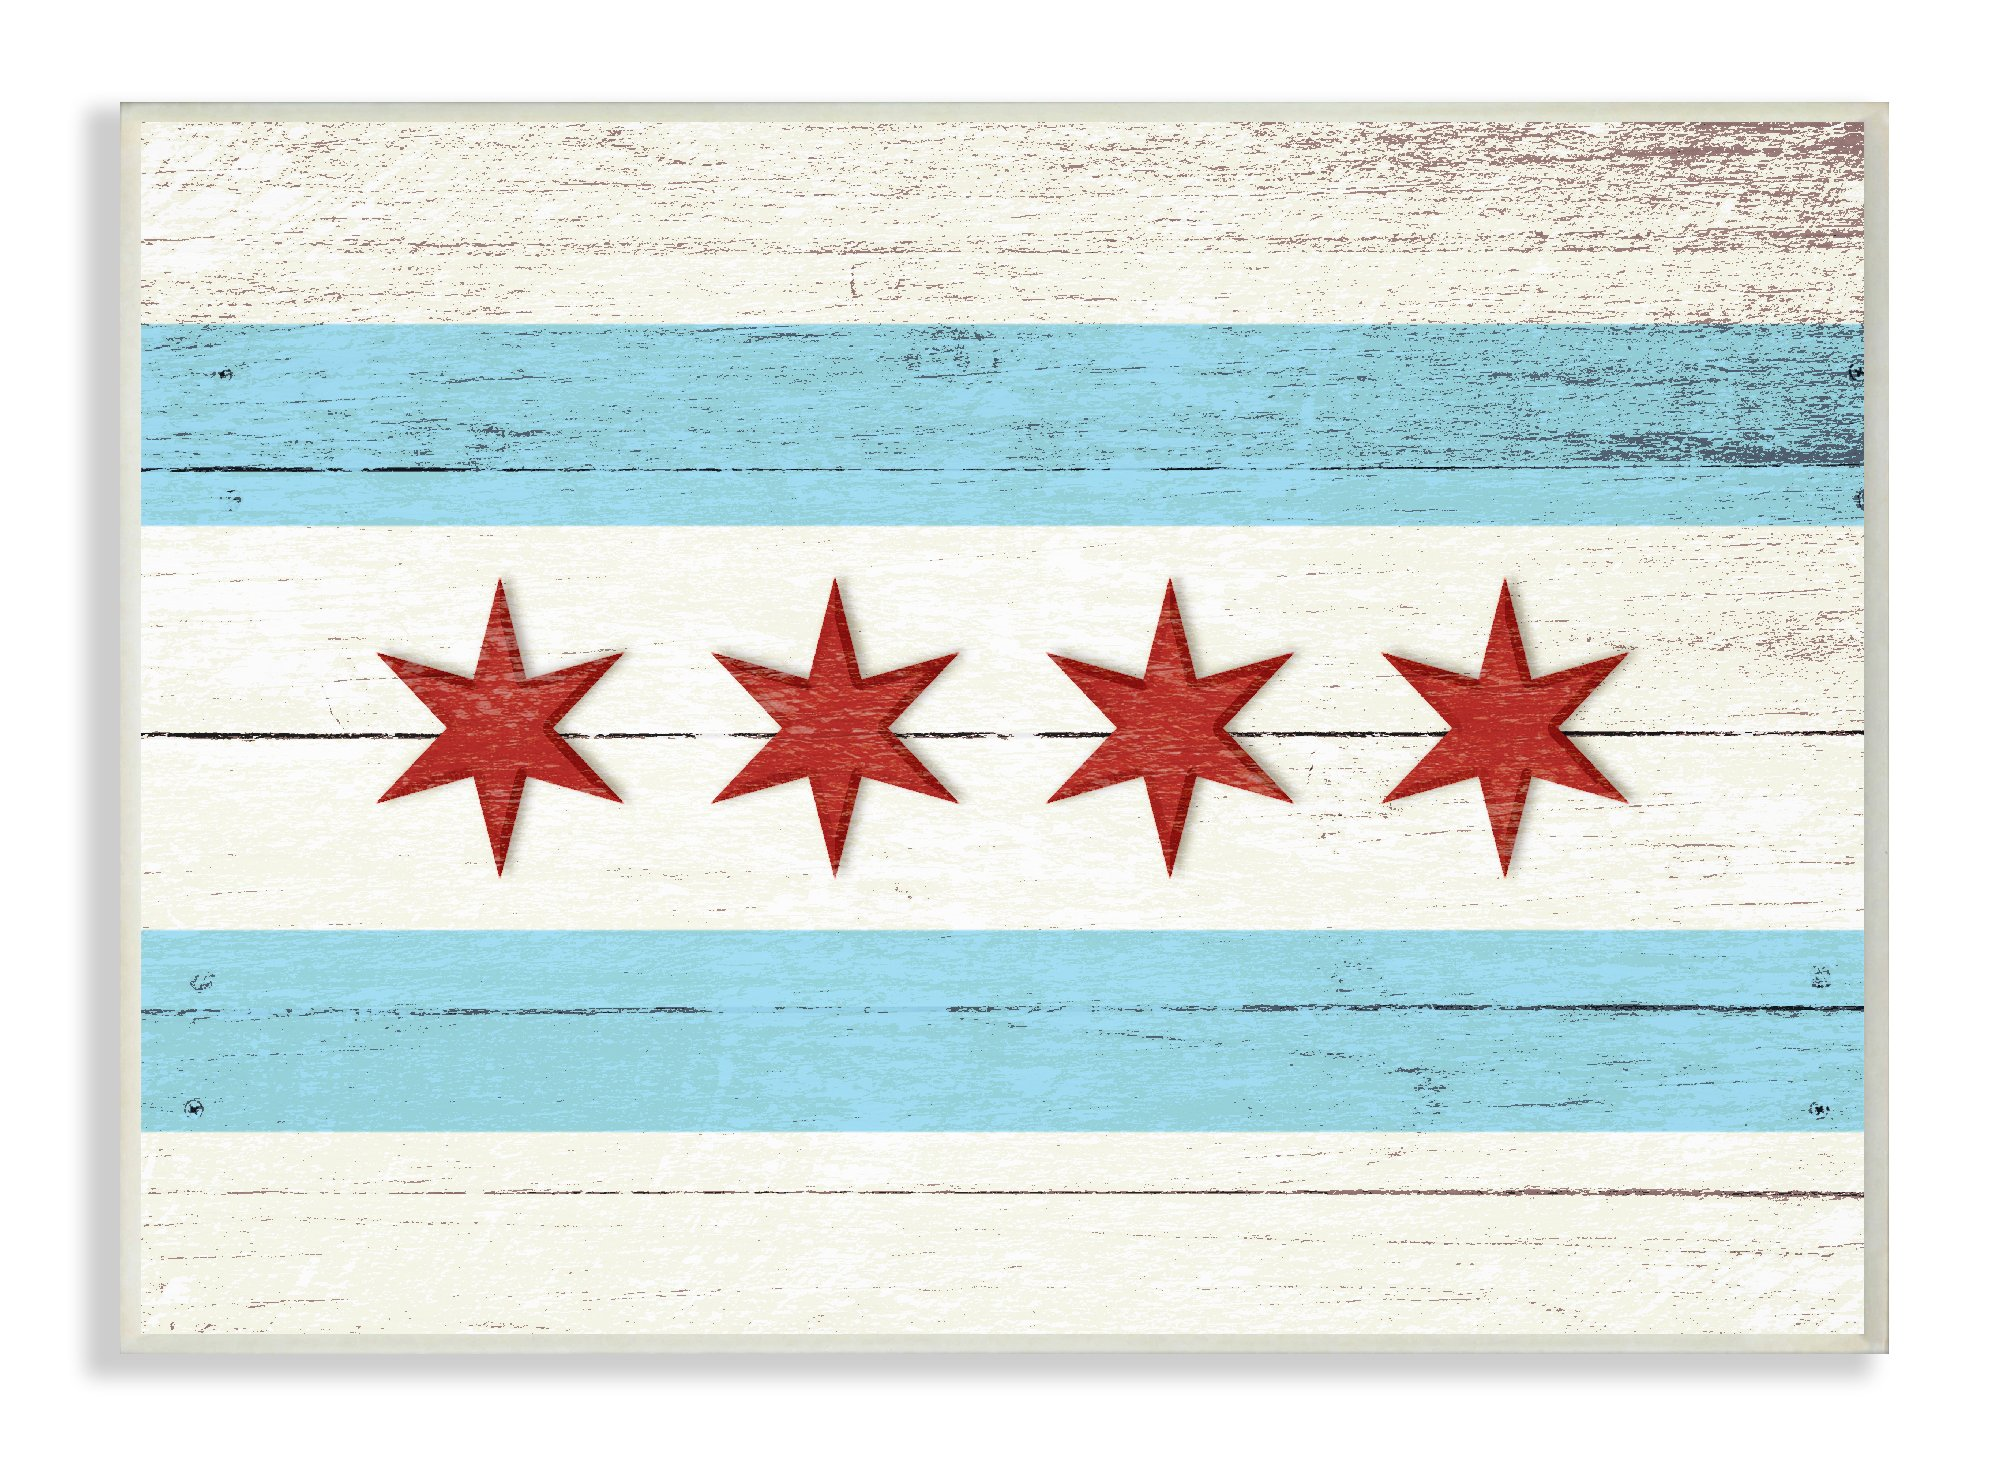 The Stupell Home Decor Collection Chicago Flag Distressed Wood Look Wall Plaque Art, 10 x 15 by The Stupell Home Decor Collection (Image #1)